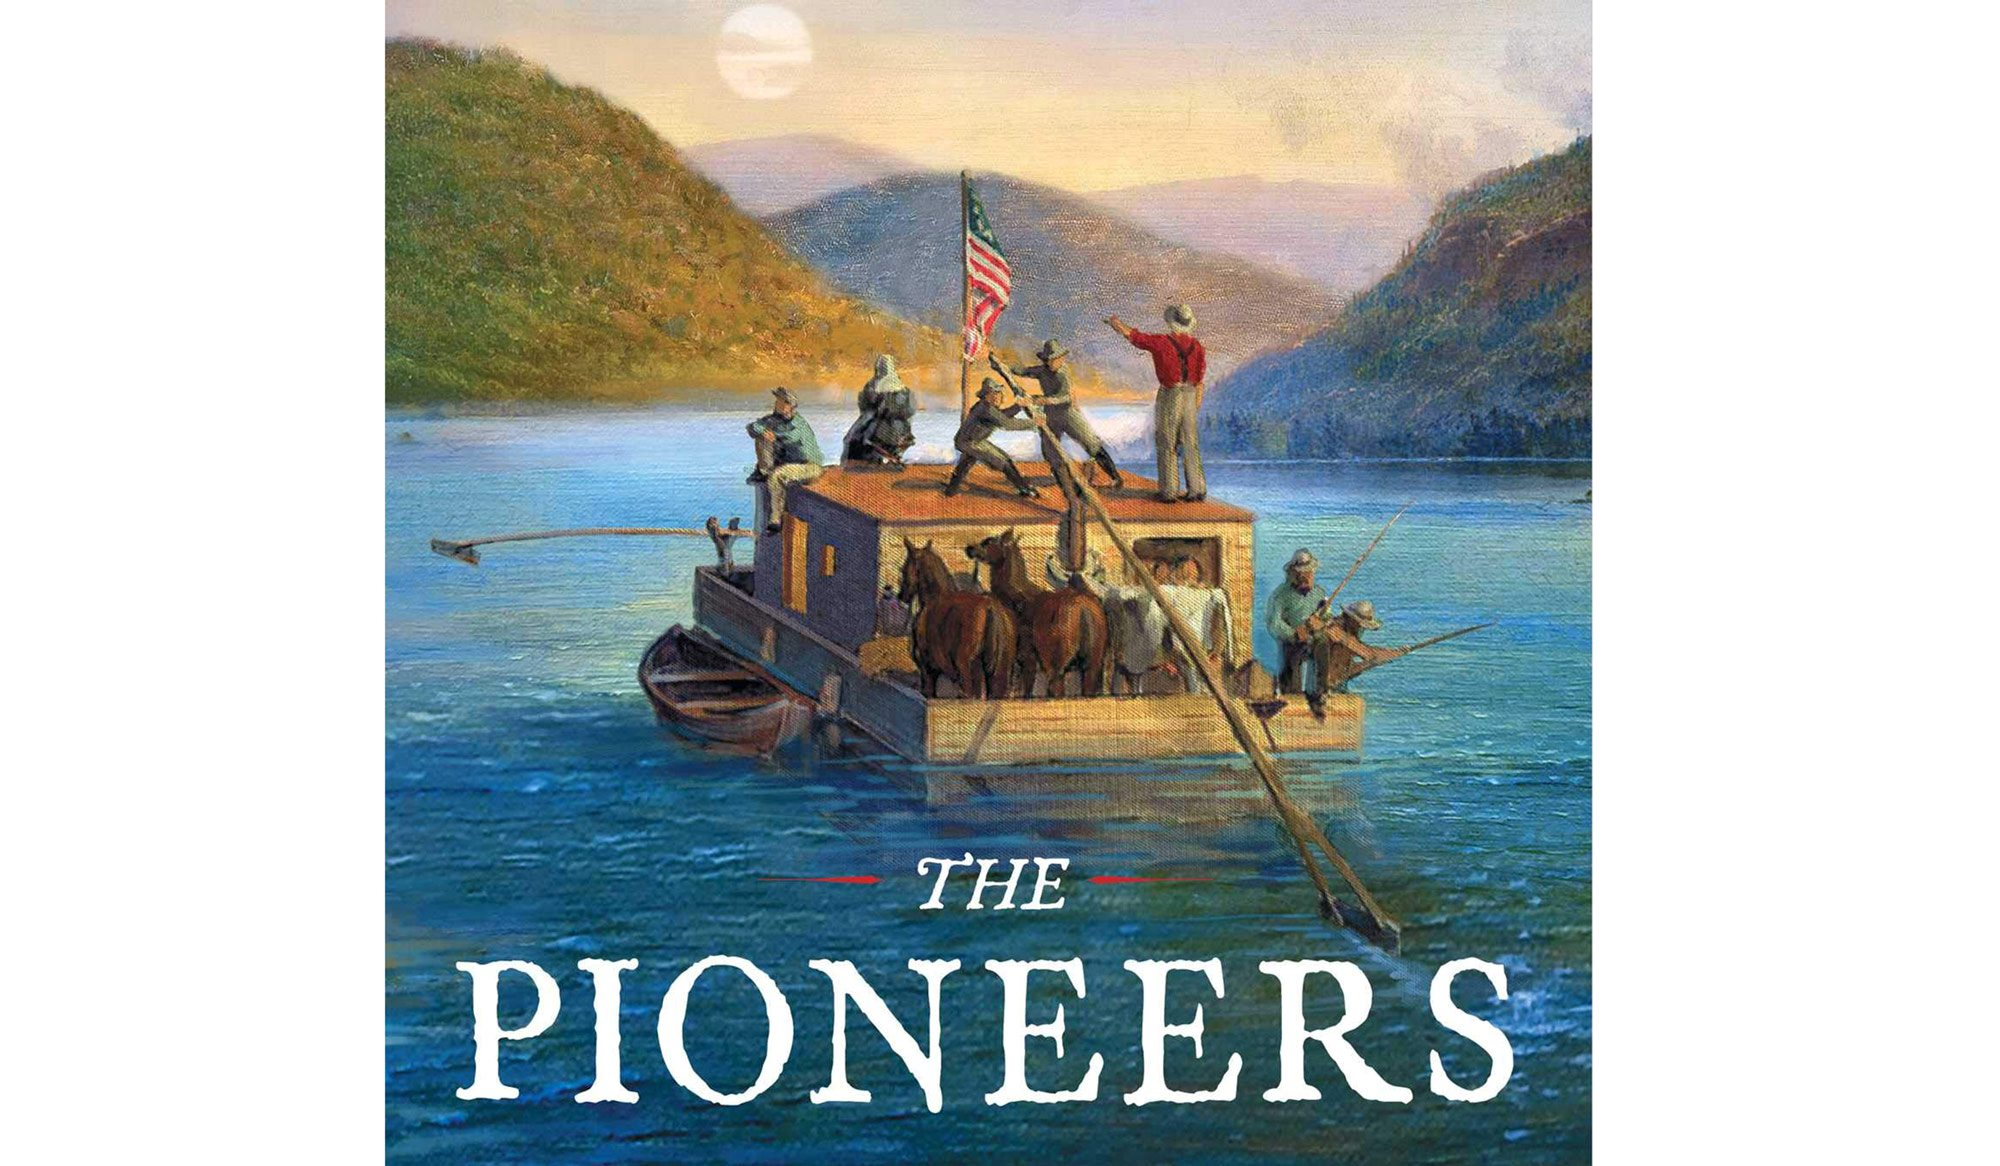 BOOK REVIEW: 'The Pioneers' by David McCullough